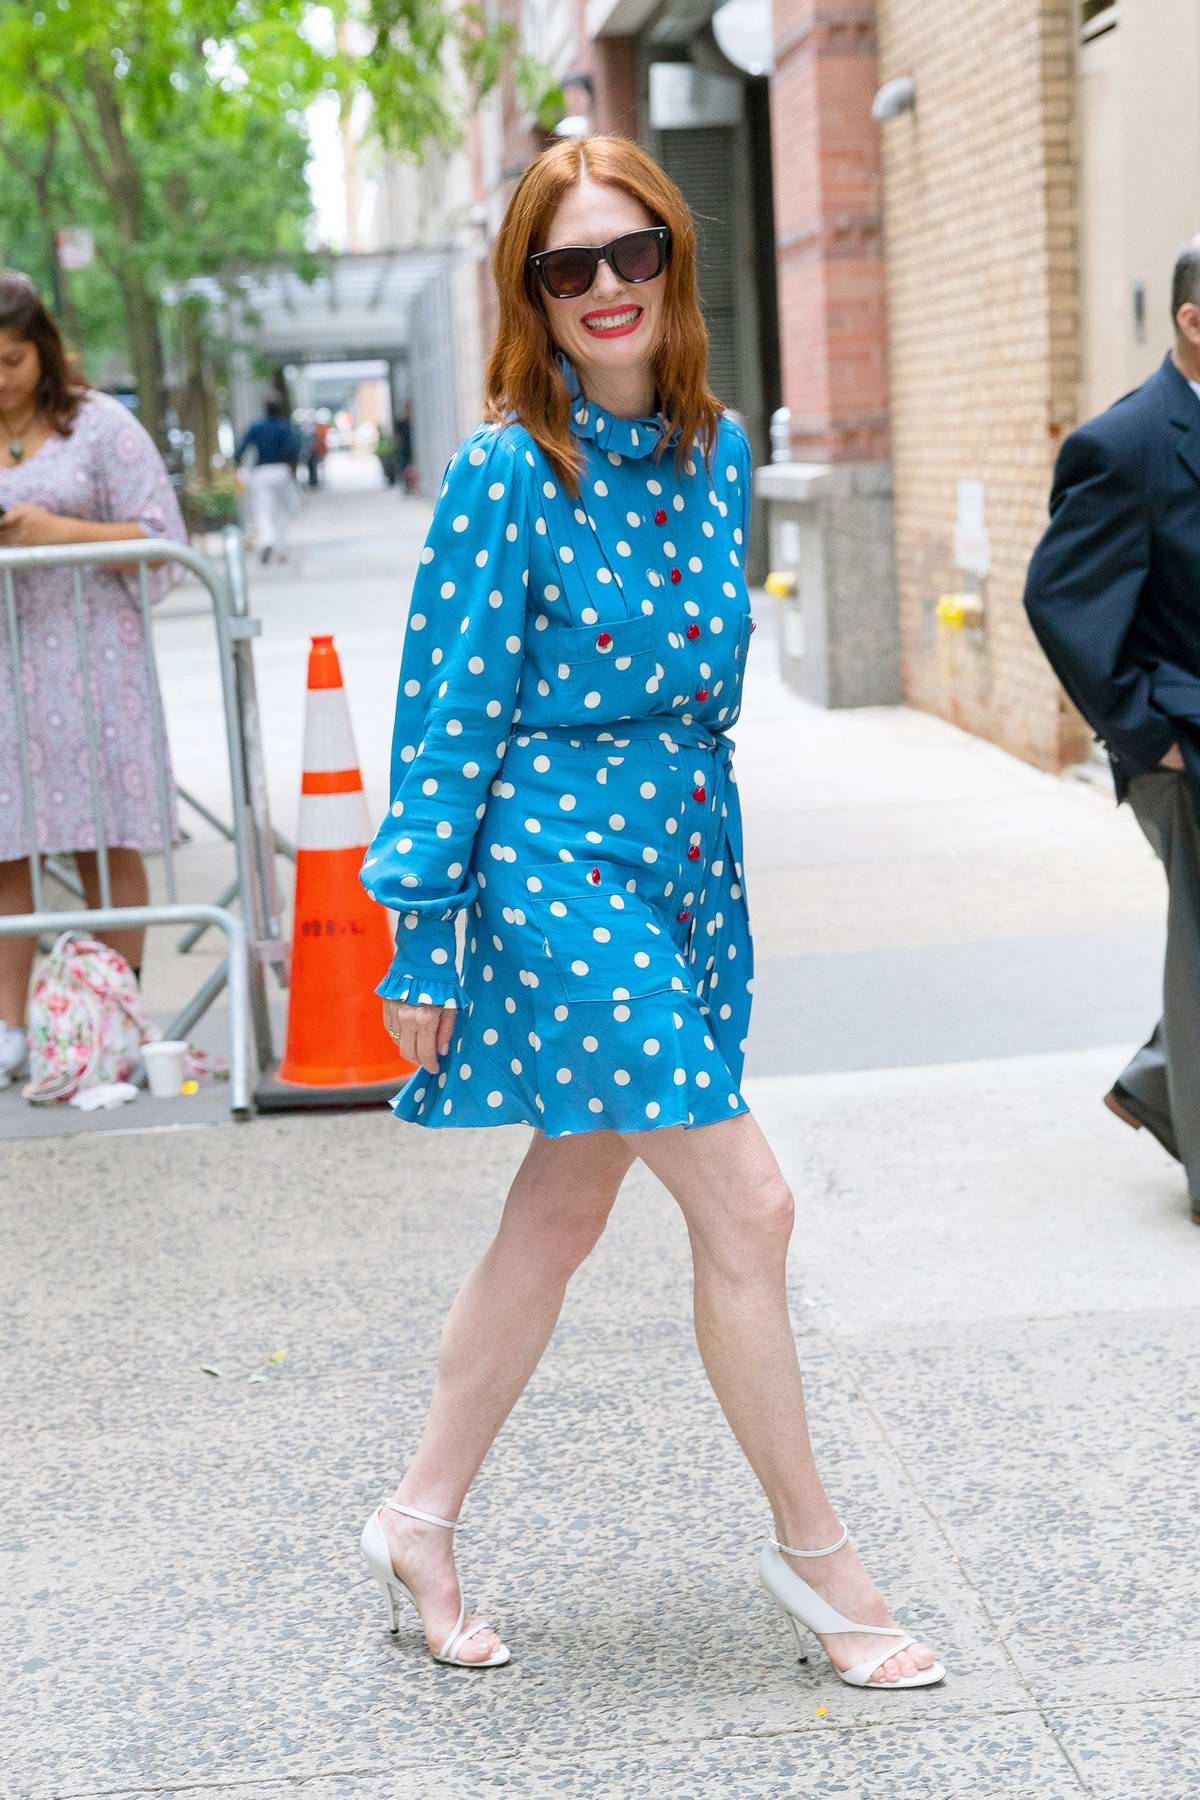 Julianne Moore stands out in a blue dress while visiting Kelly and Ryan Show in New York City